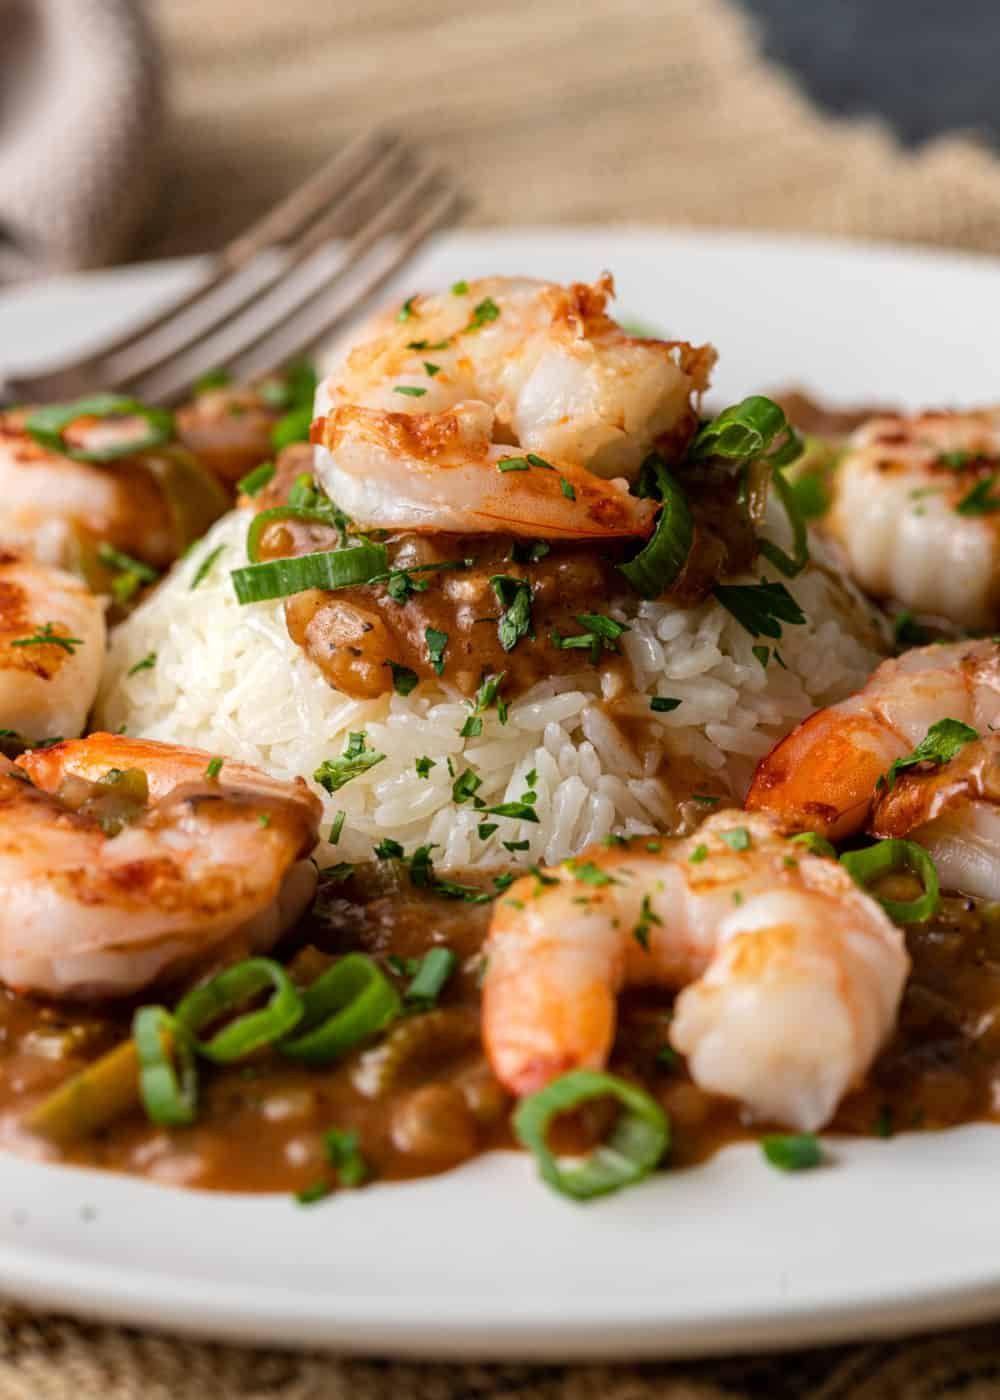 classic New Orleans shrimp dish of etouffee served on white plate